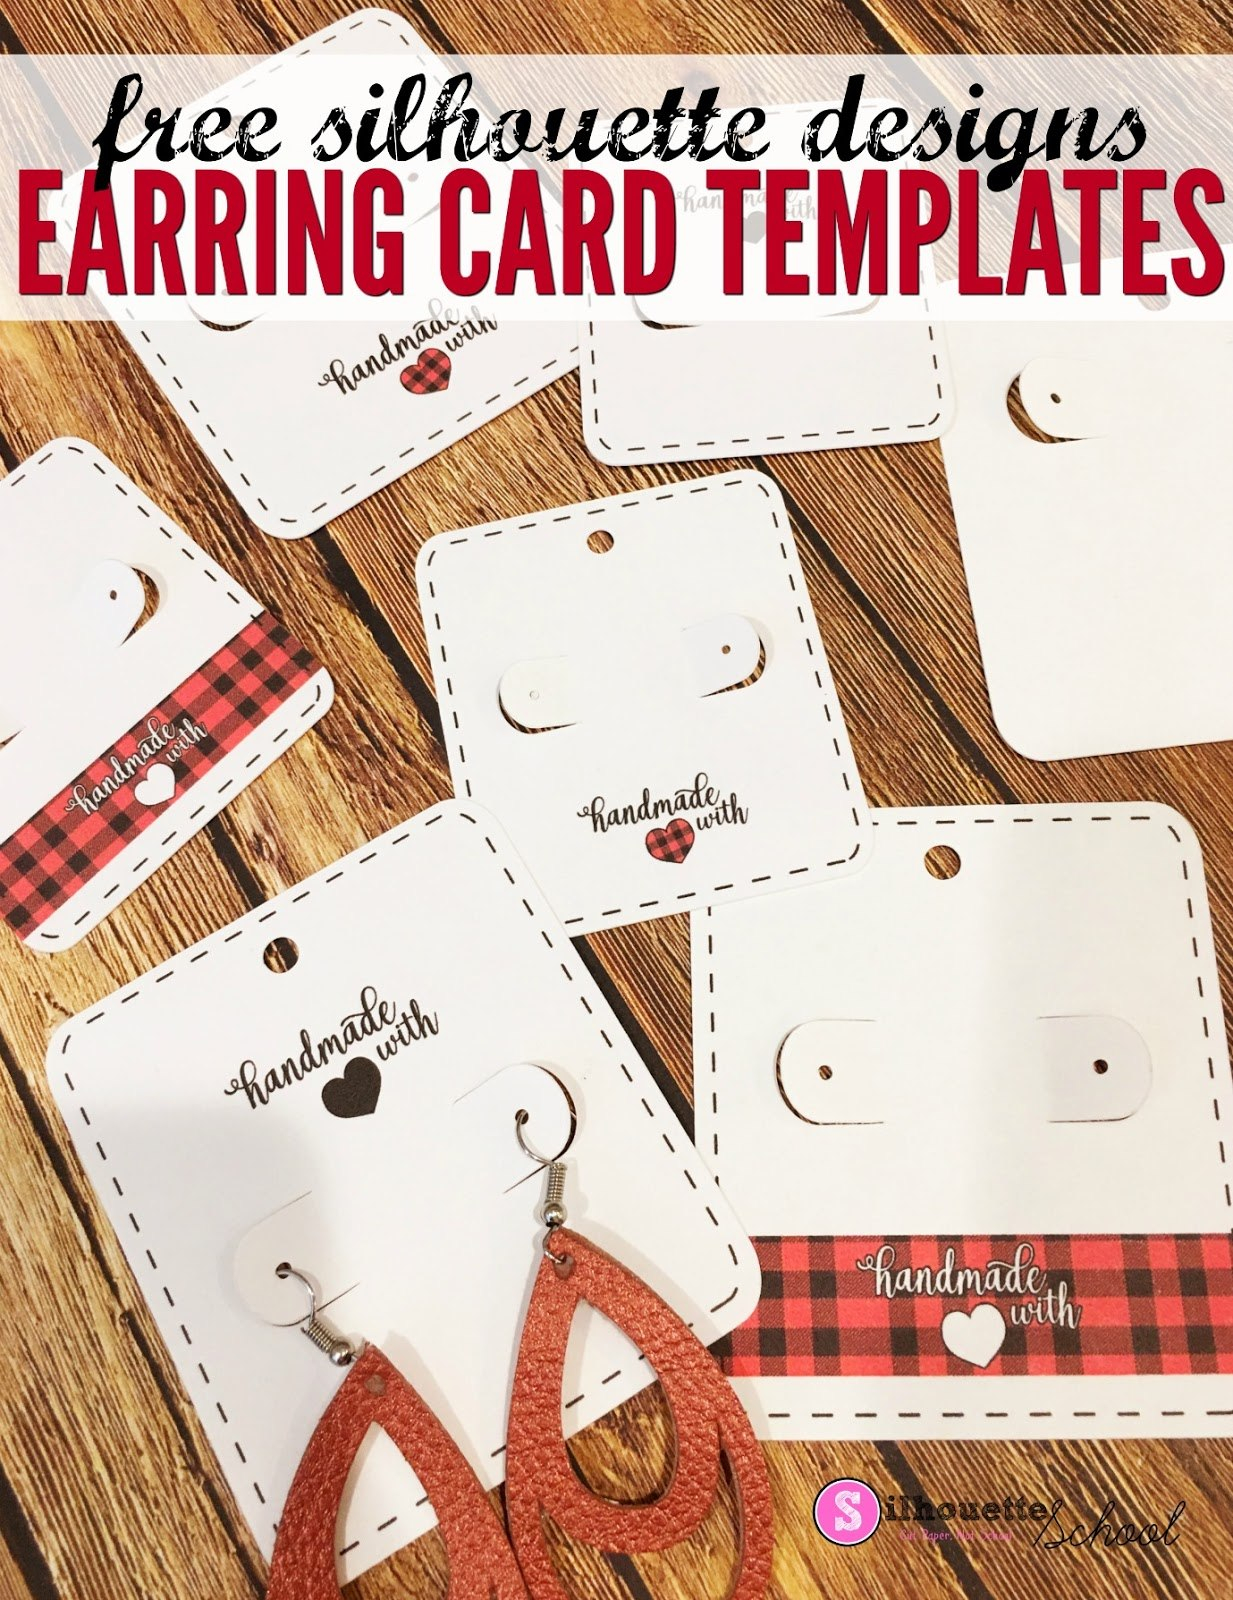 Free Silhouette Earring Card Templates Set Of   Silhouette School In Silhouette Cameo Card Templates